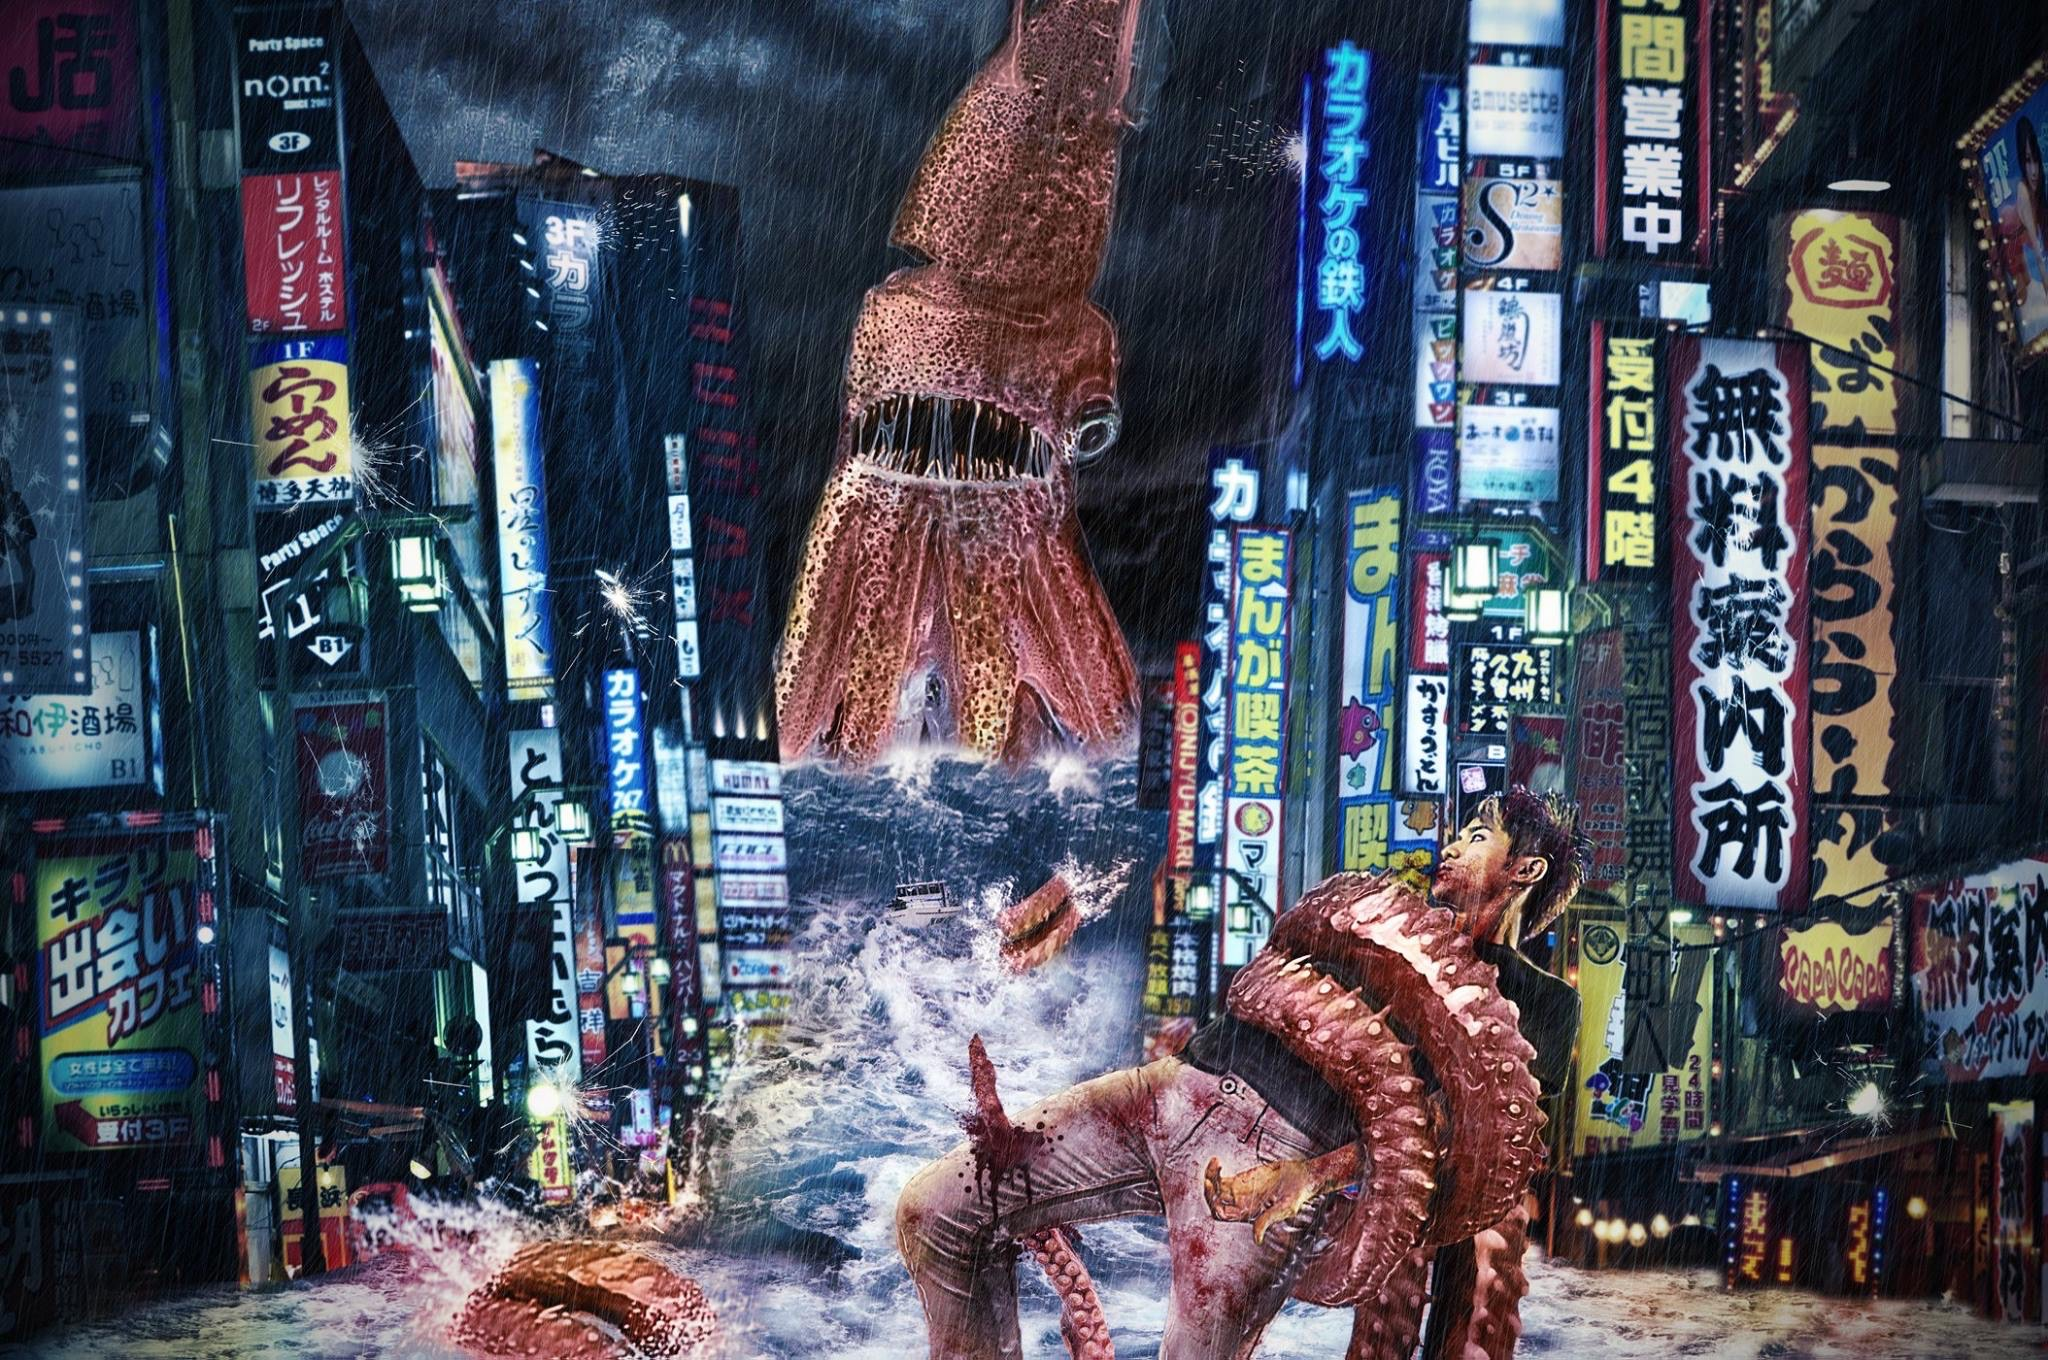 Hong Kong Squid Photo Manipulation